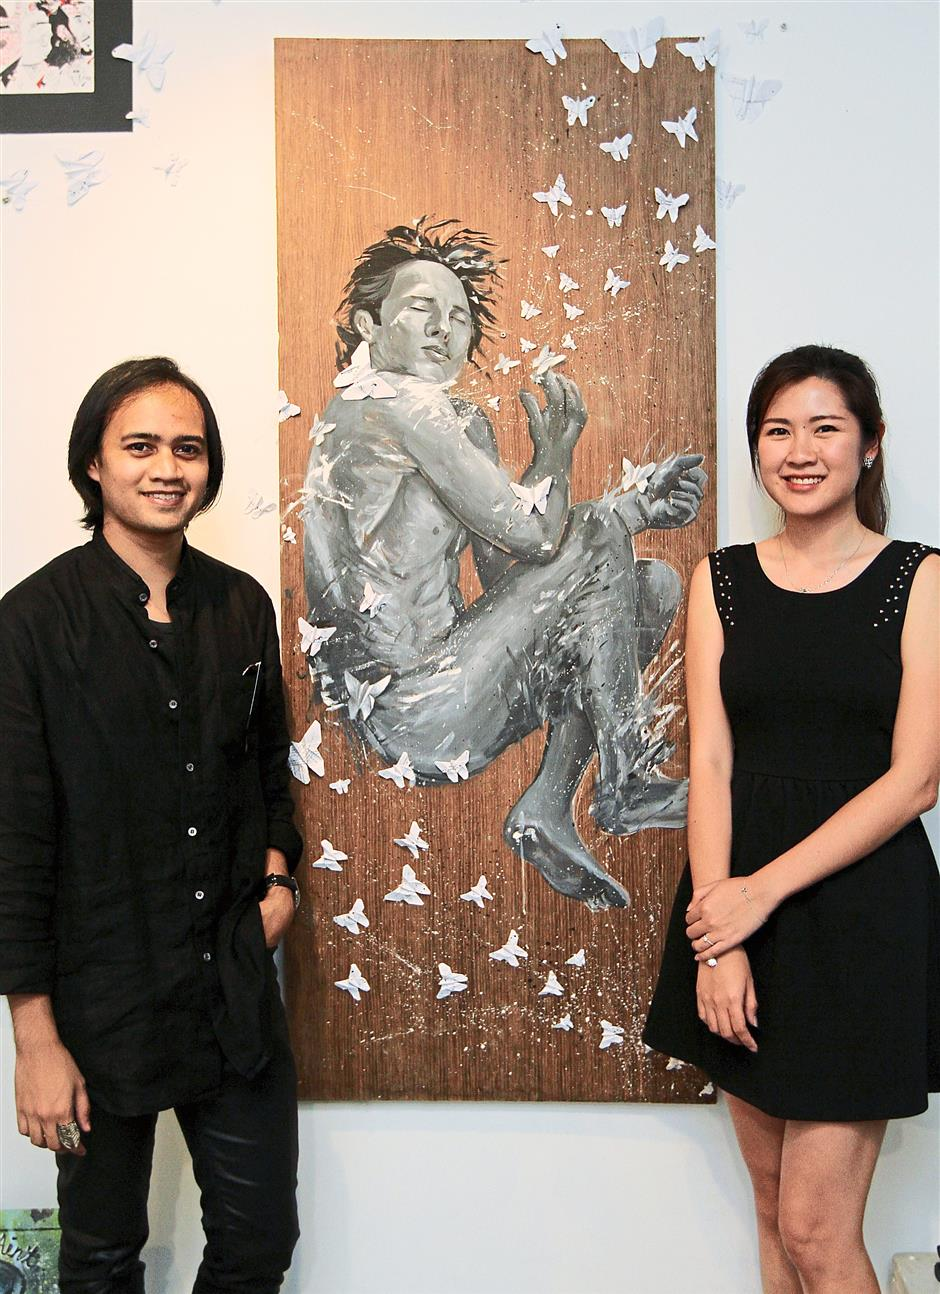 Pictured is an acrylic on plywood piece titled Nirvana by artist Caryn Koh Kooi San (right) and her best friend Aiman Ariffin (left) who himself is adept at origami folding though his background is in finance. The art piece itself is a representation of freedom from a sense of self within the dream-state as the male in the portrait is stripped bare in foetal position while the origami butterflies that represents beauty, escapism but also a contrasted sense of responsibilities that border the dream and reality.